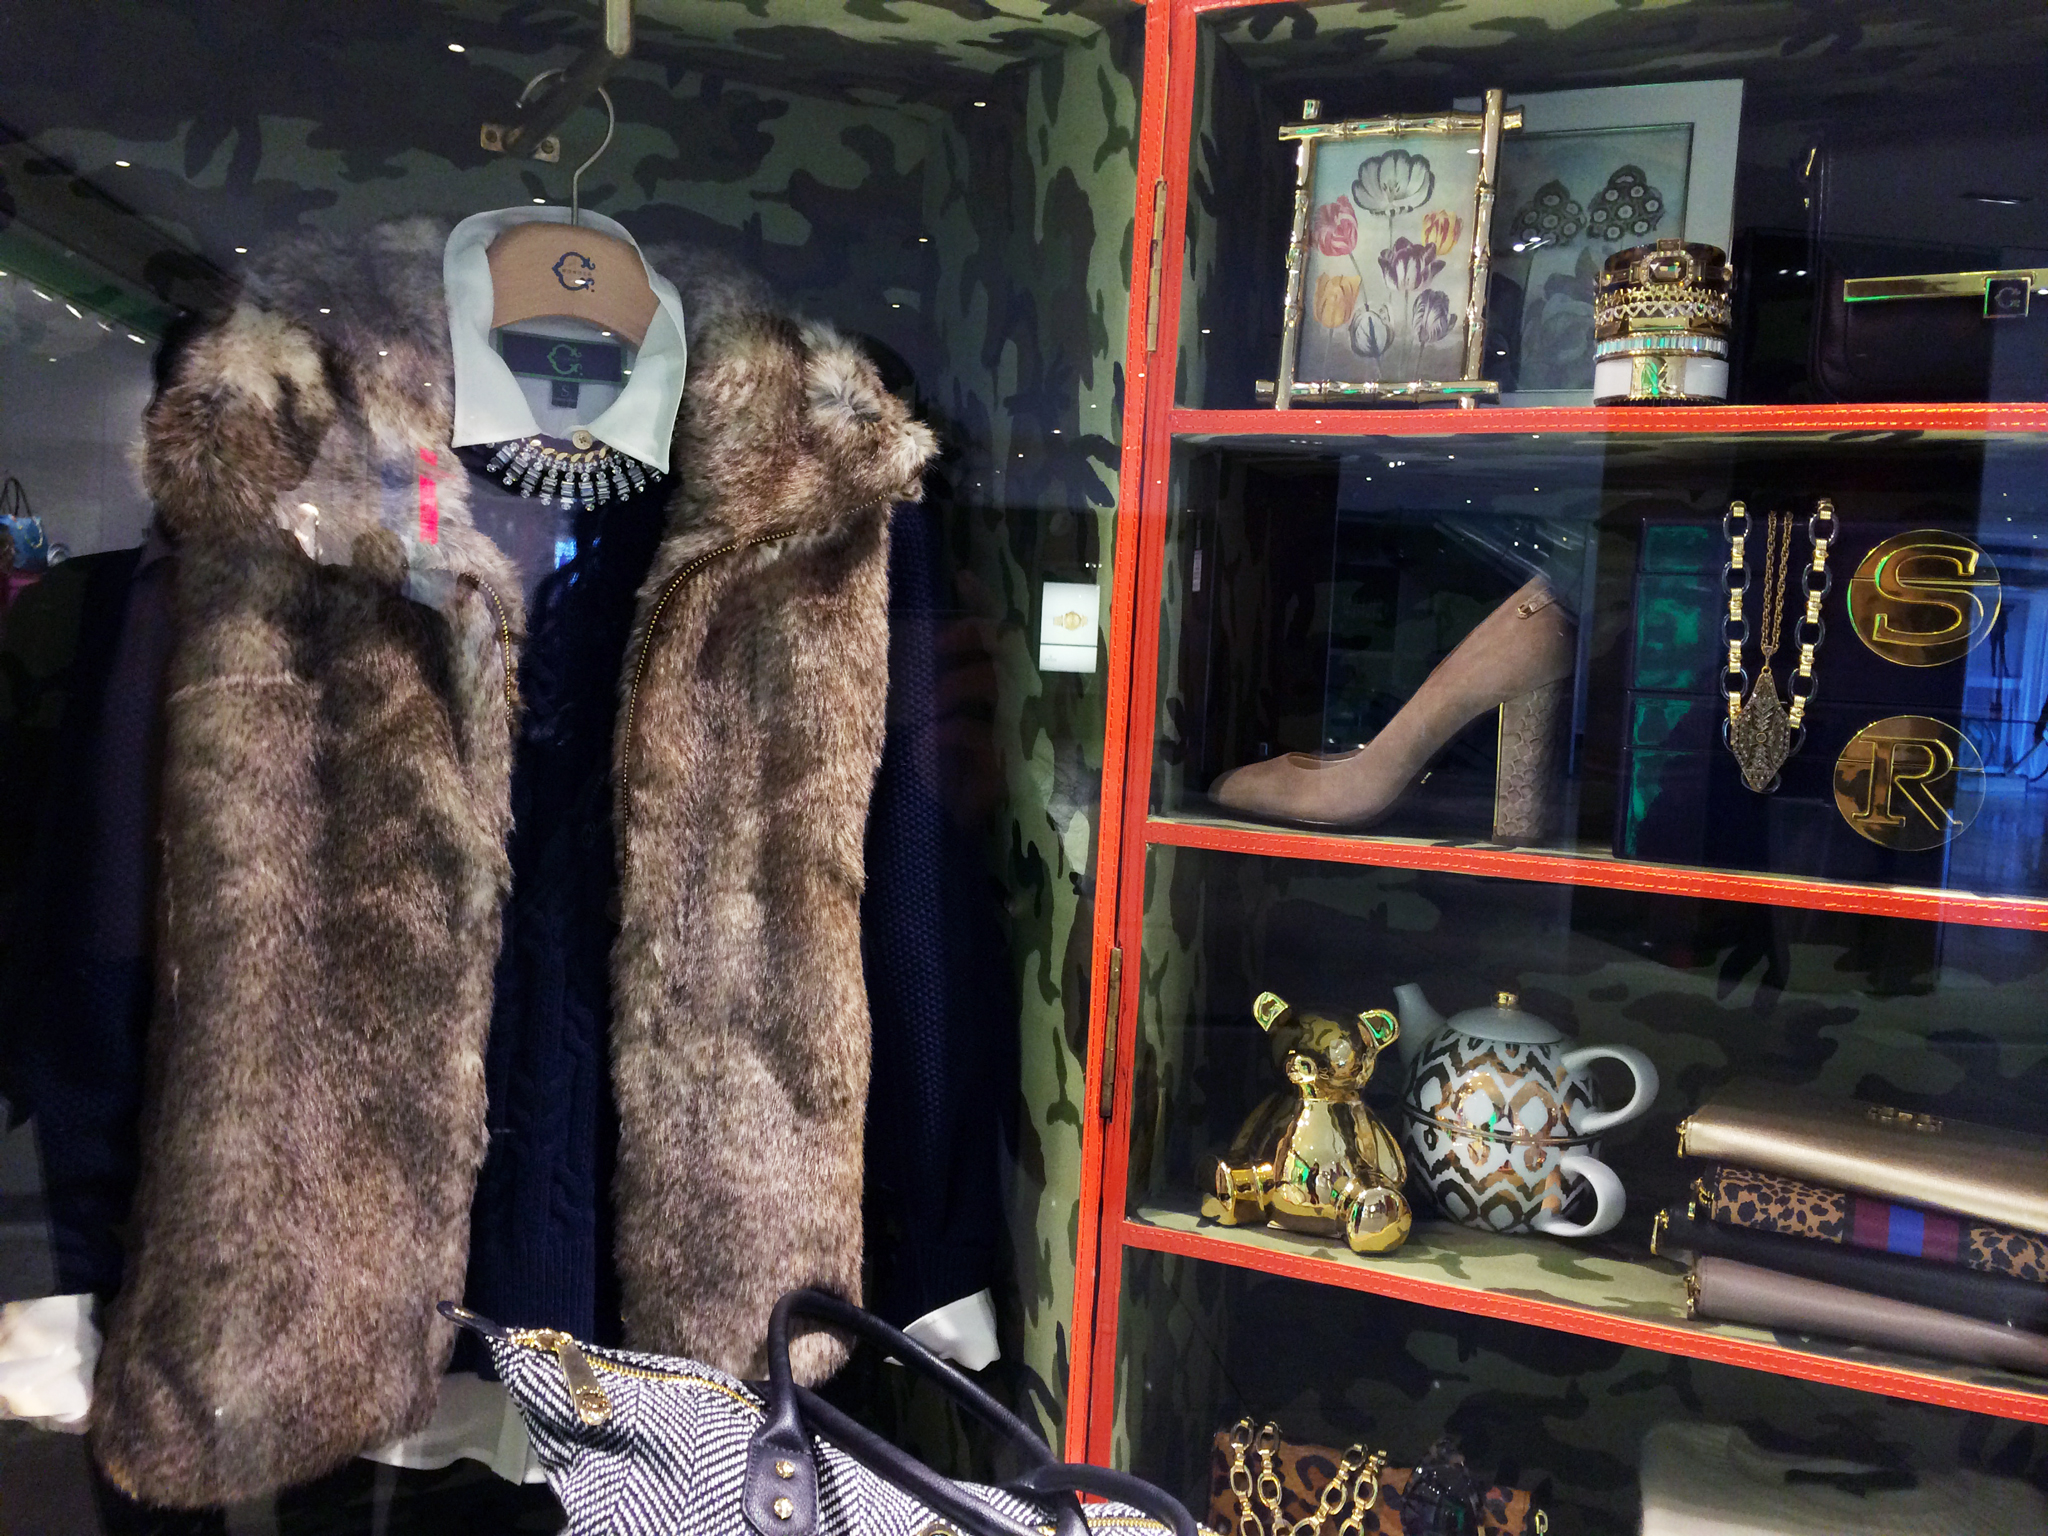 Fashion and accessory display at C. Wonder in New York. Photo by alphacityguides.